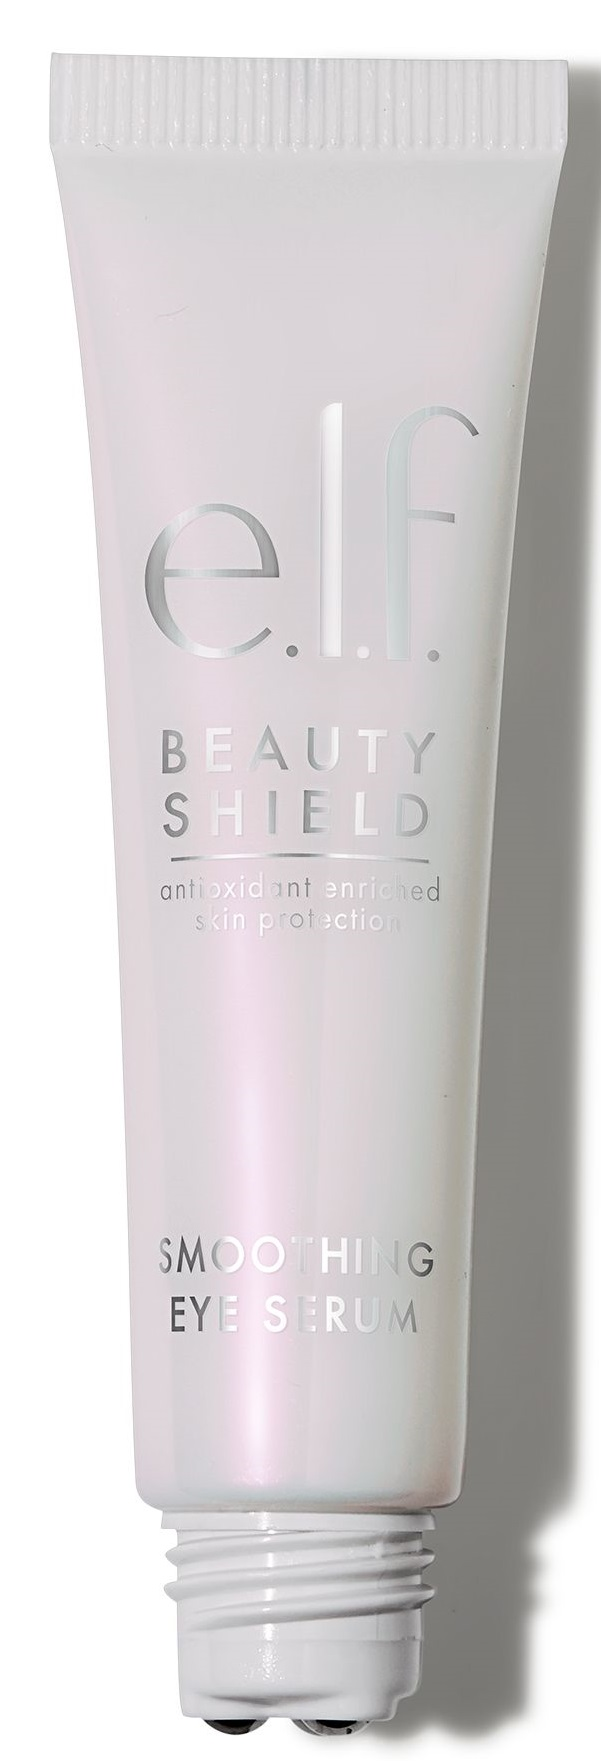 e.l.f. Beauty Shield Smoothing Eye Serum